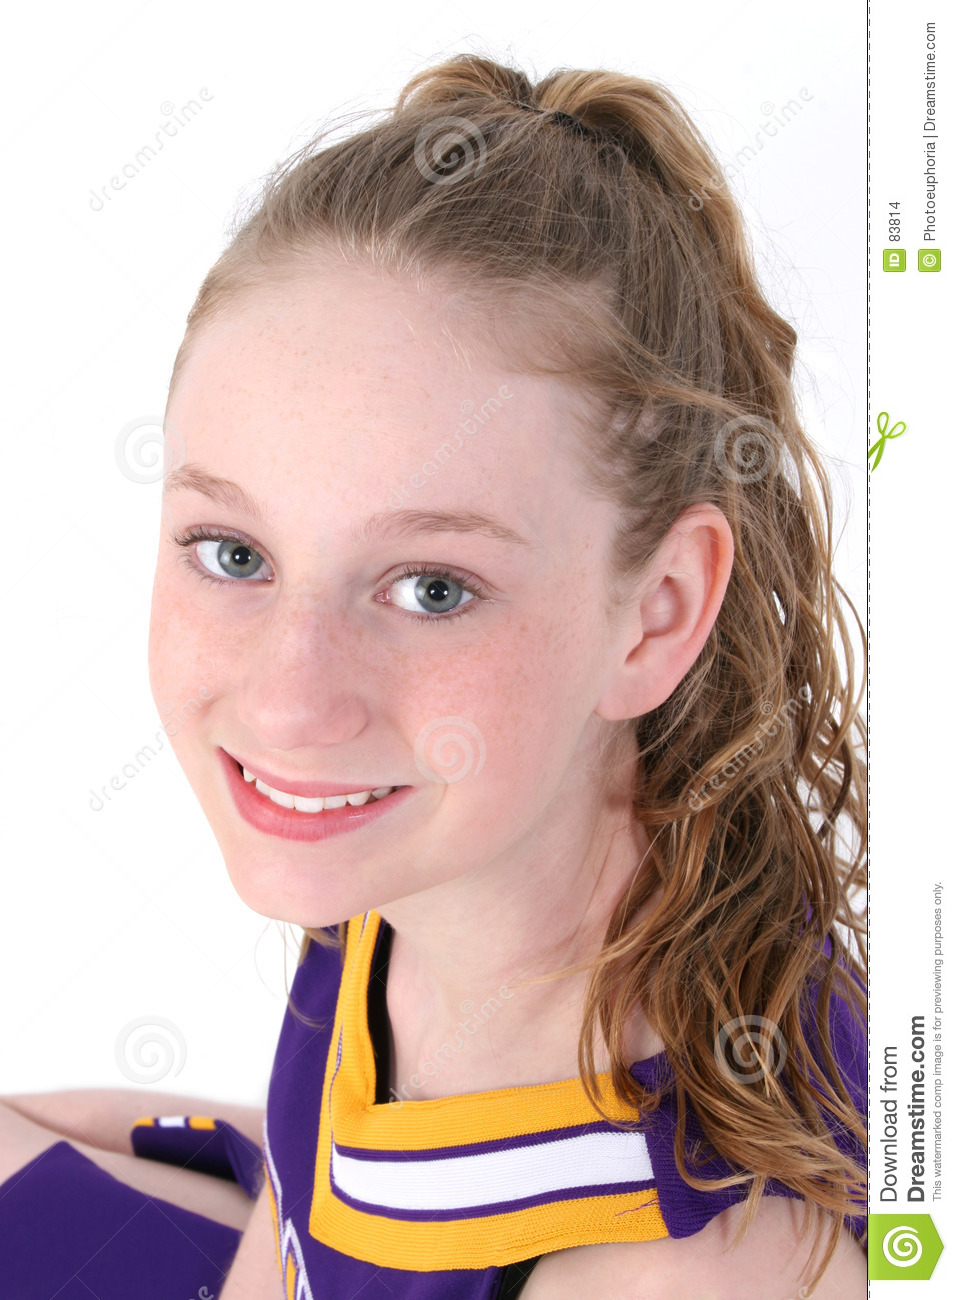 Recommend you Real teen girl cheerleader